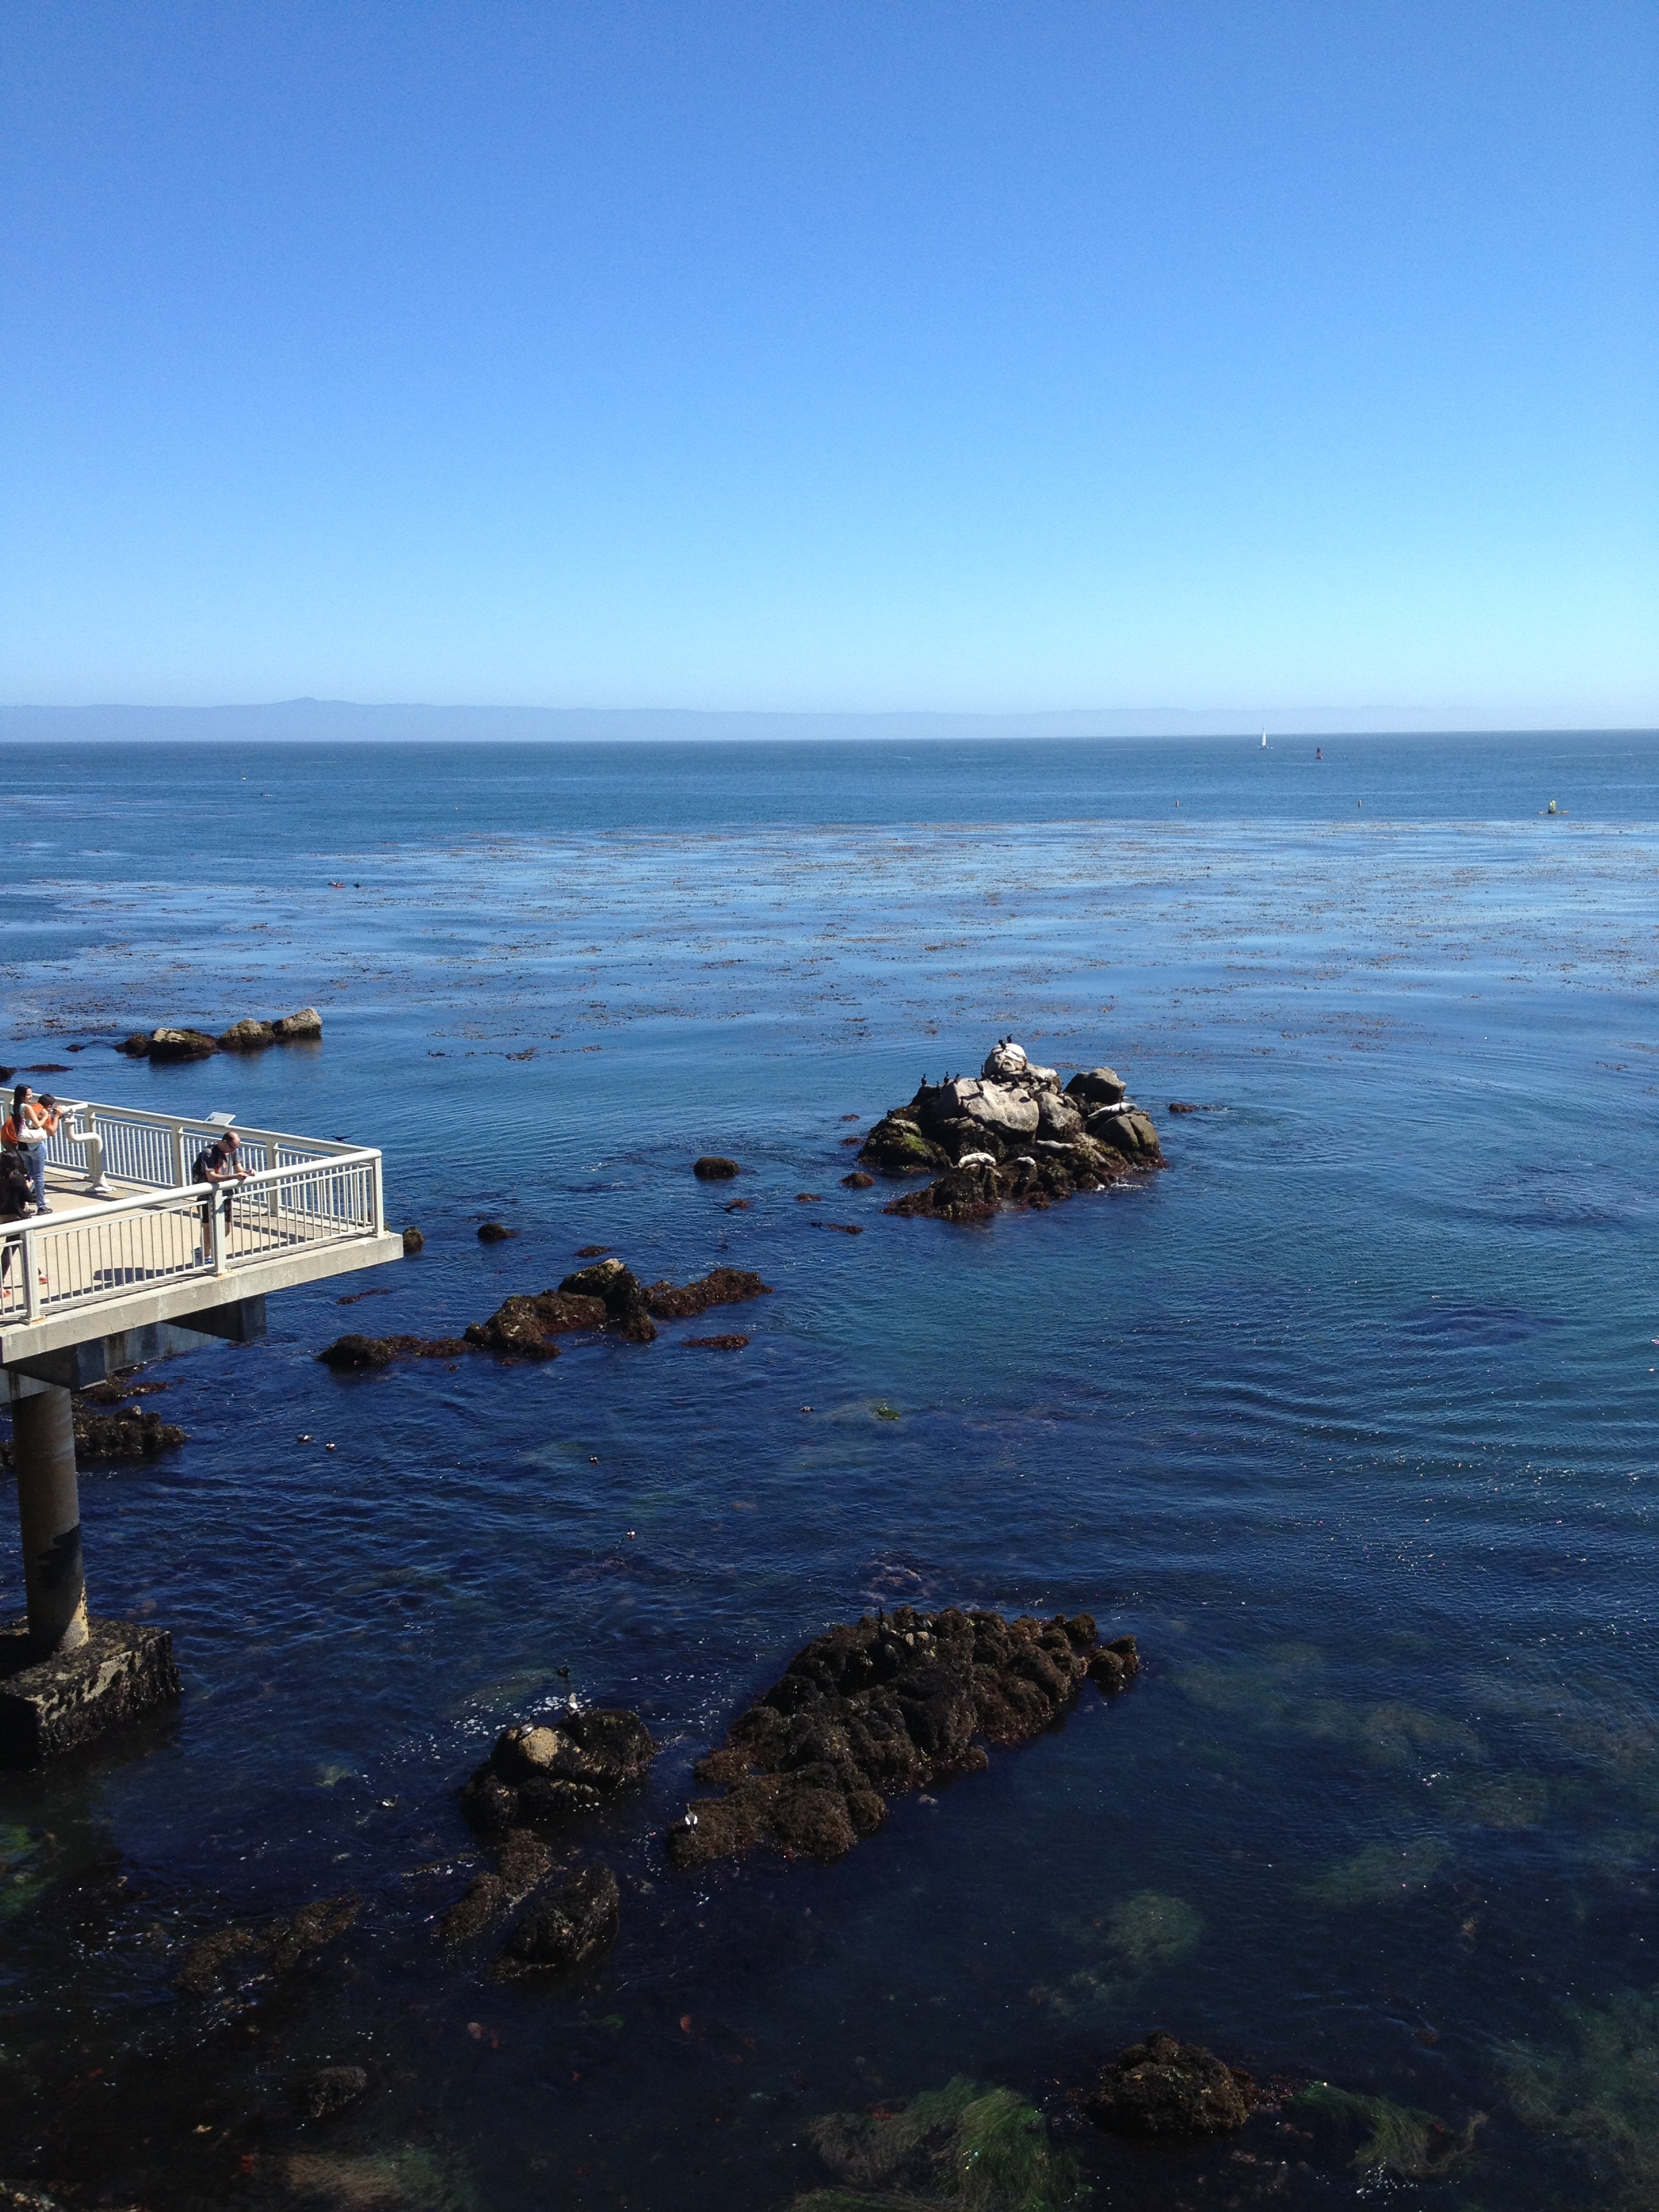 Observation deck at the Monterey Bay Aquarium